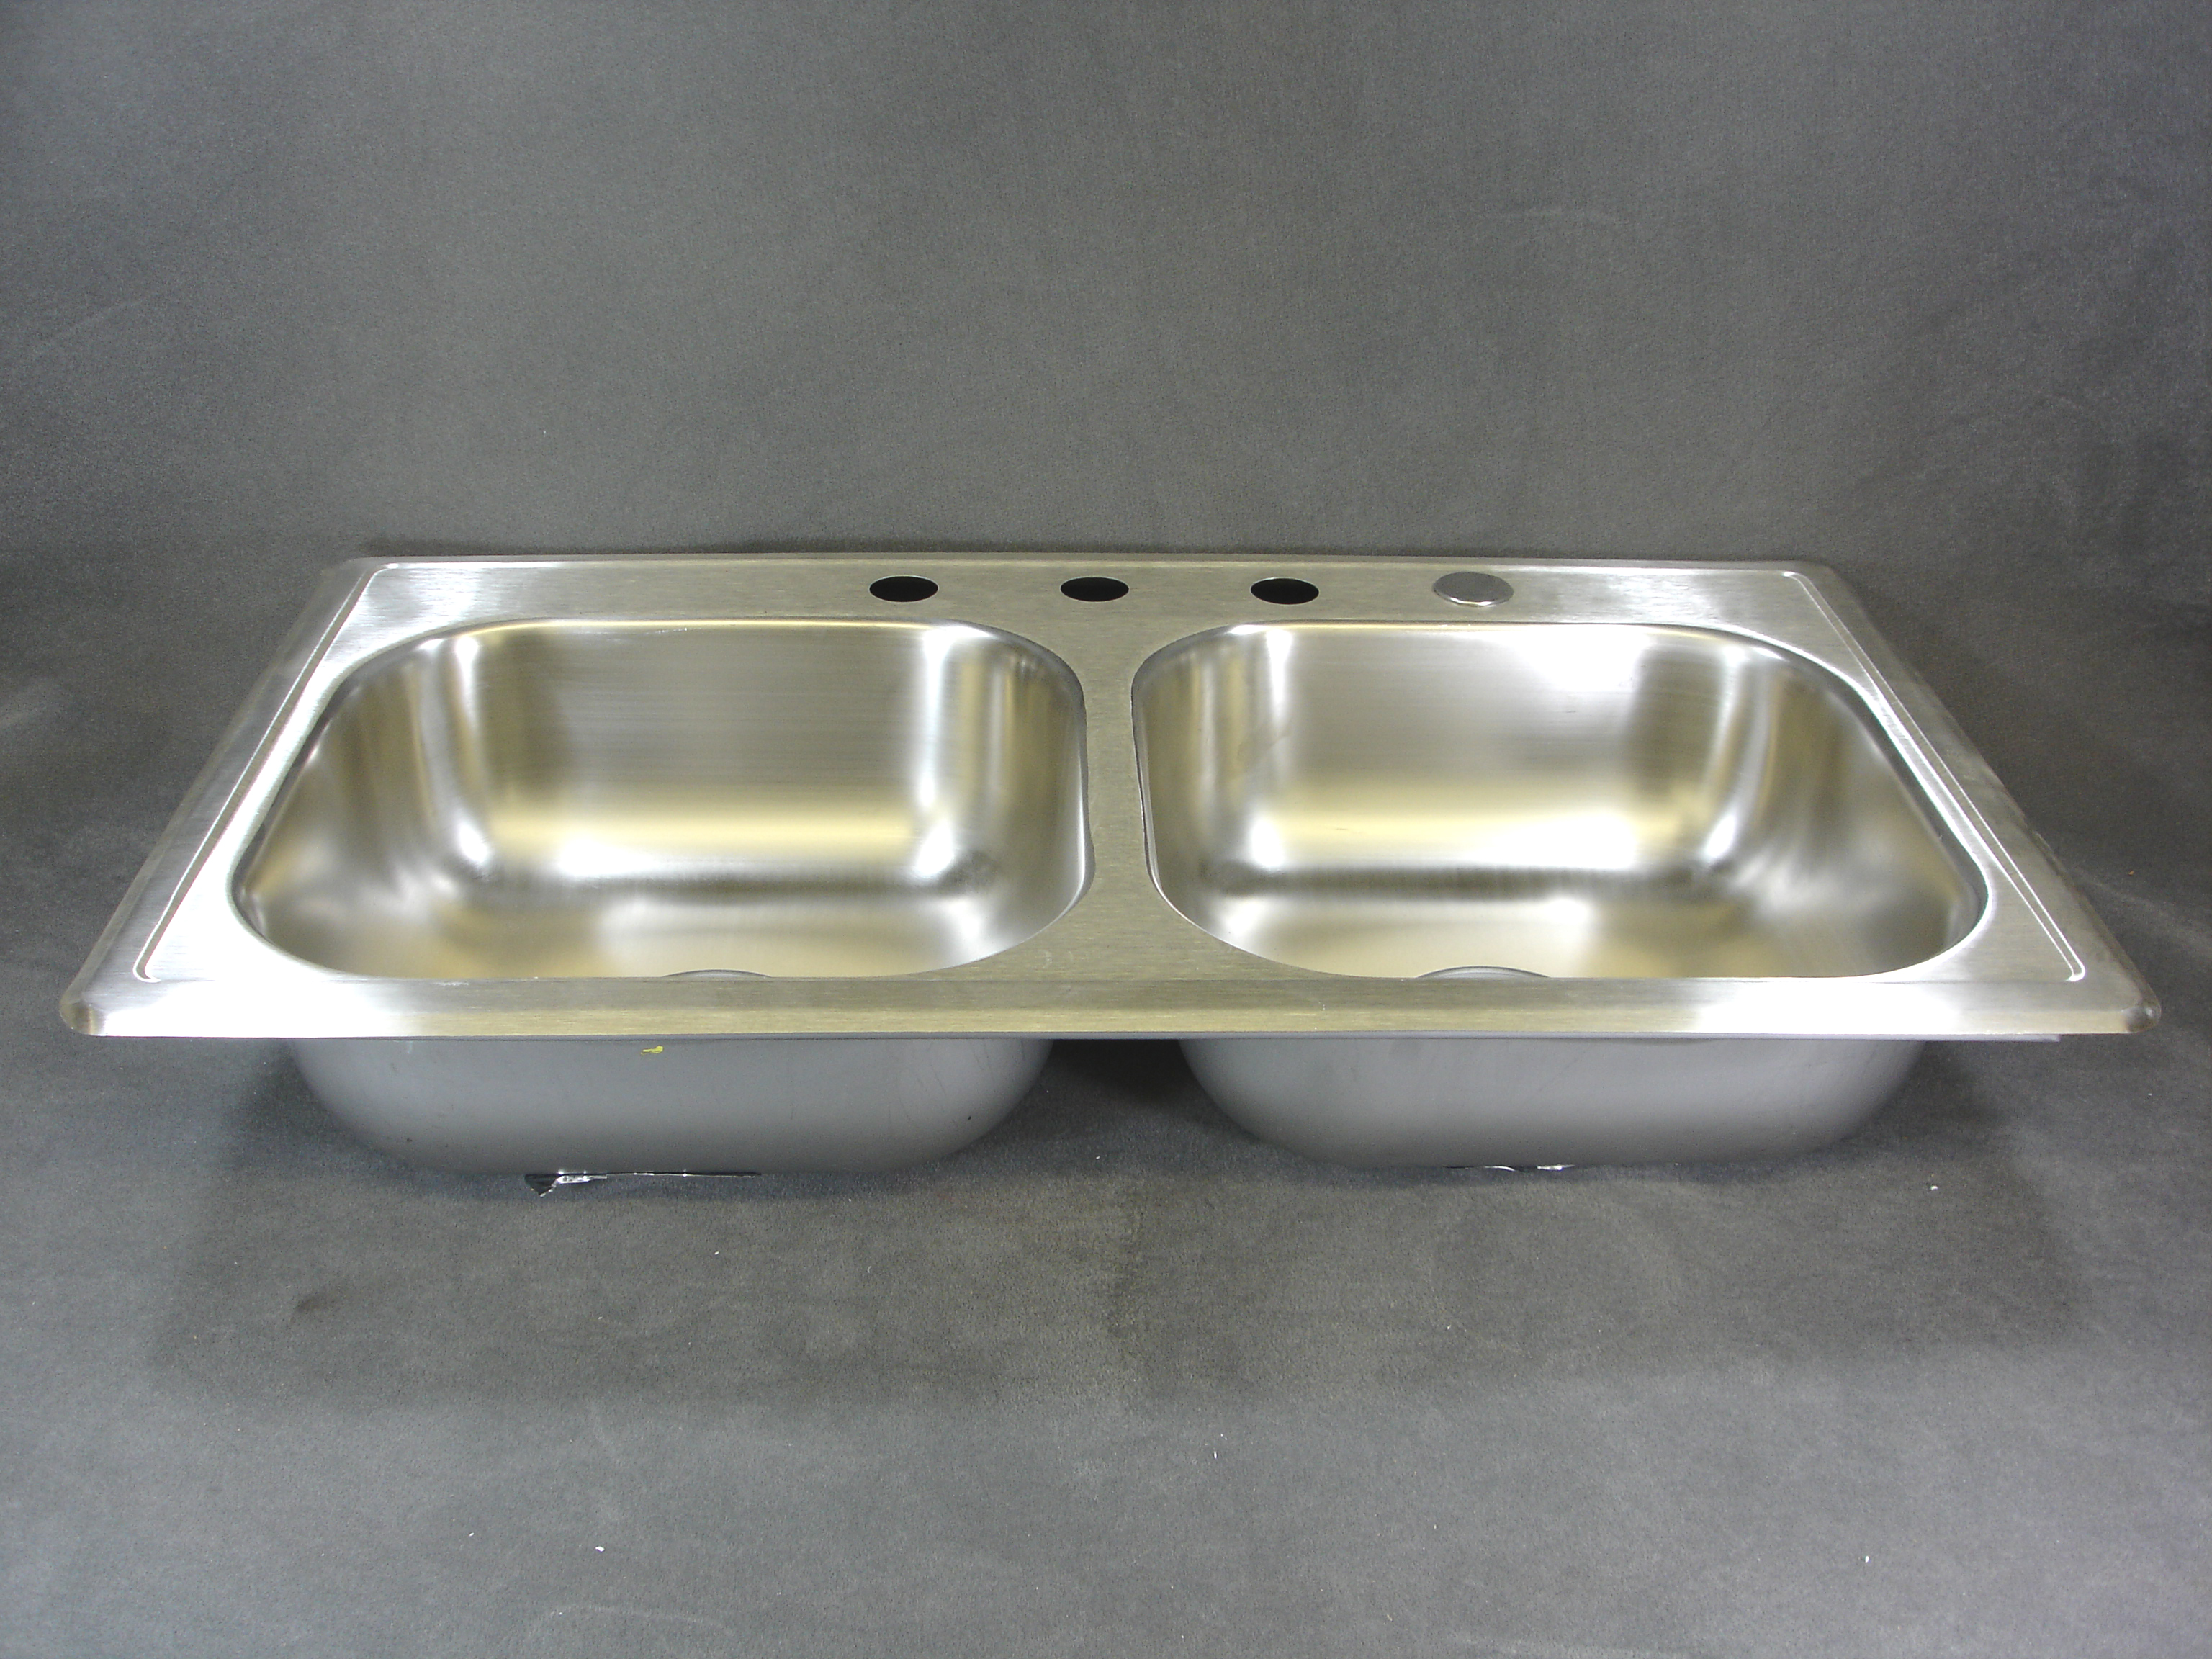 Stainless Steel Sink Suppliers : 33 X 19 STAINLESS STEEL SINK - Royal Durham Supply